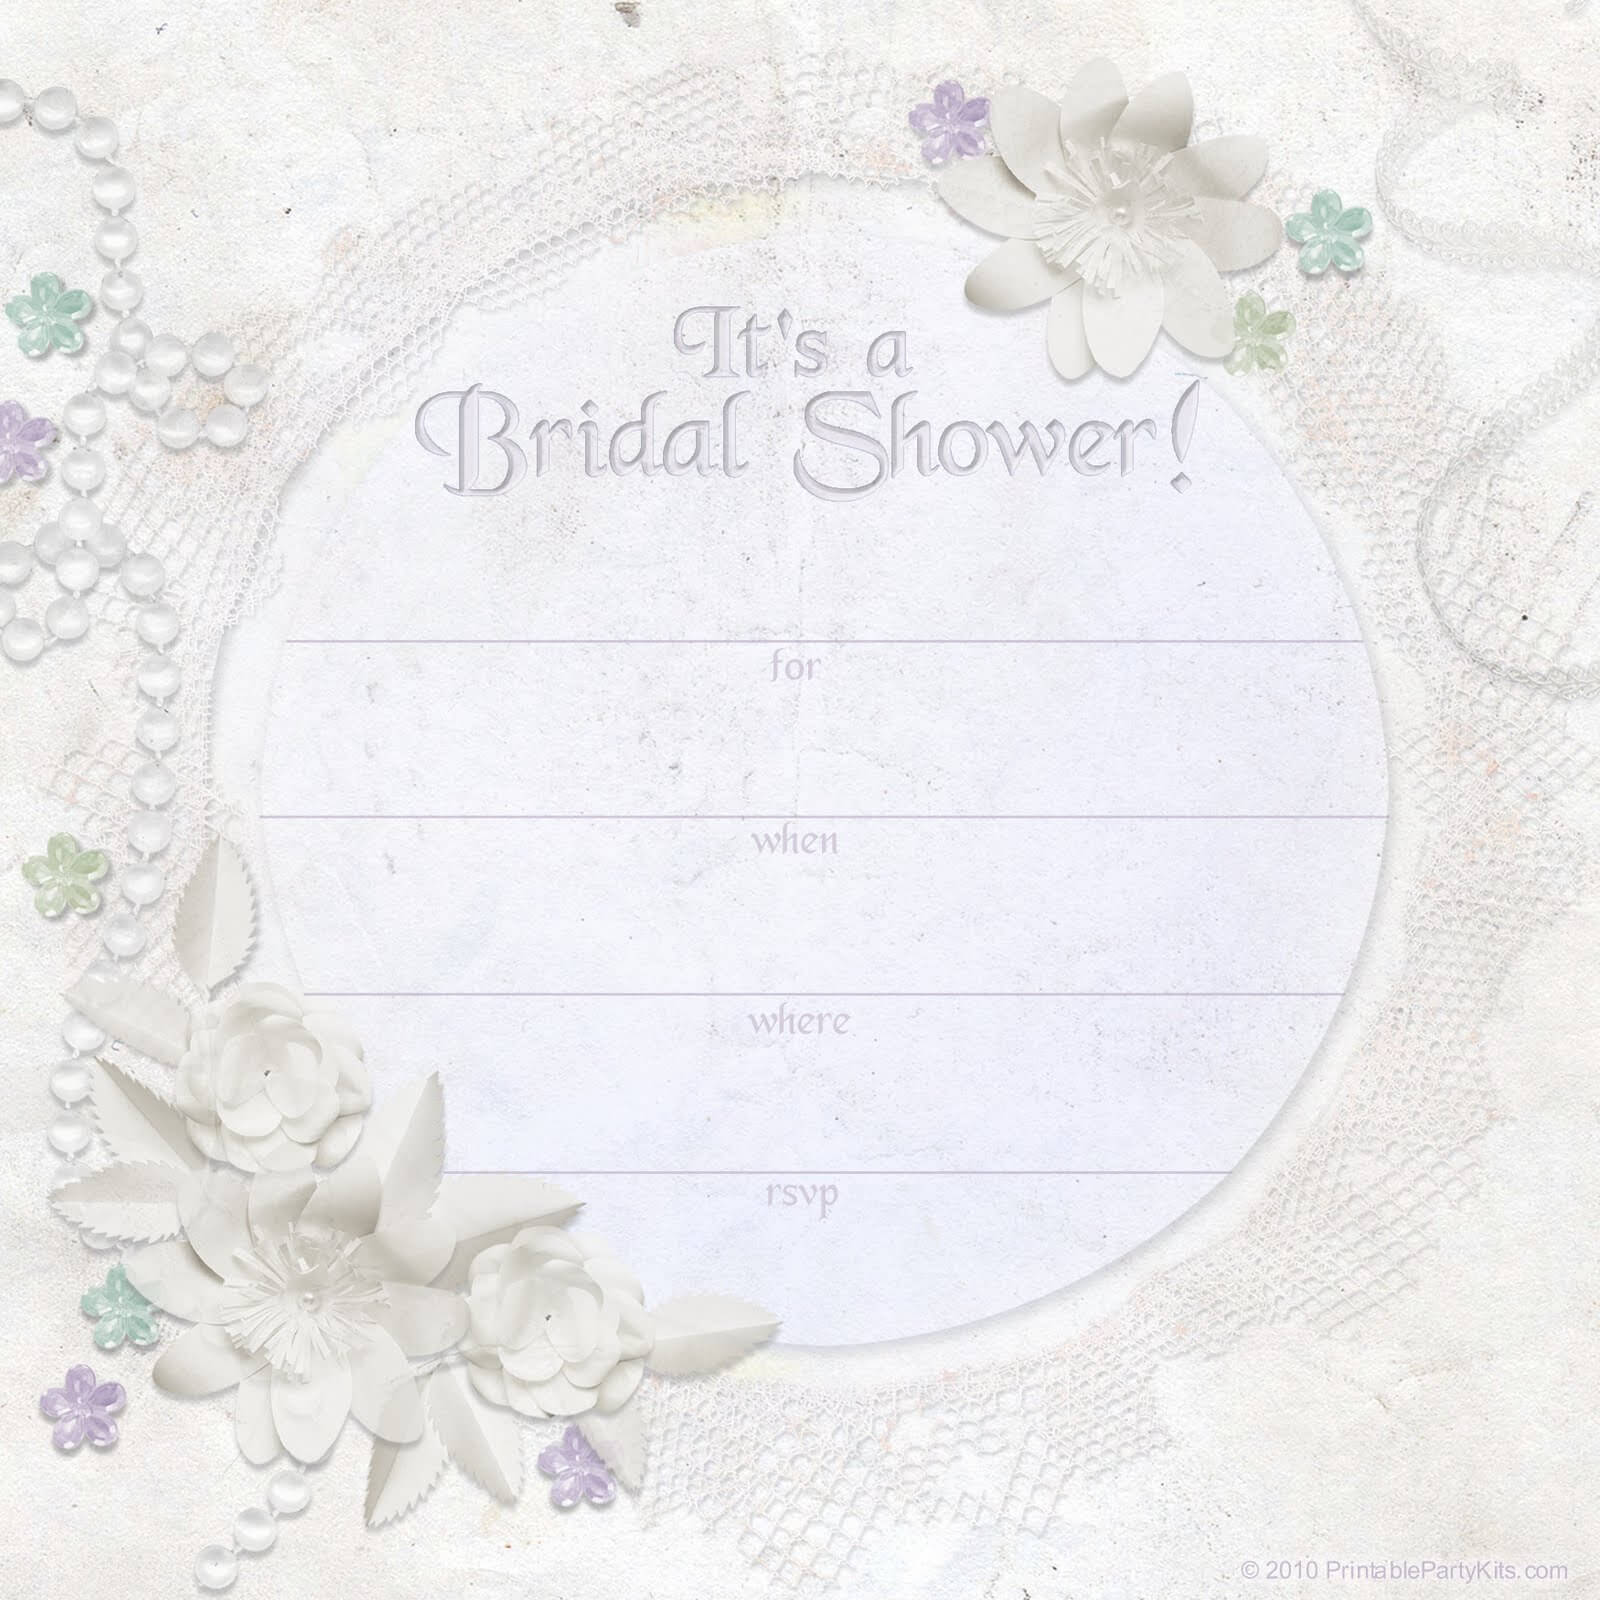 34 Stylish Bridal Shower Invitation Templates With Regard To Blank Bridal Shower Invitations Templates